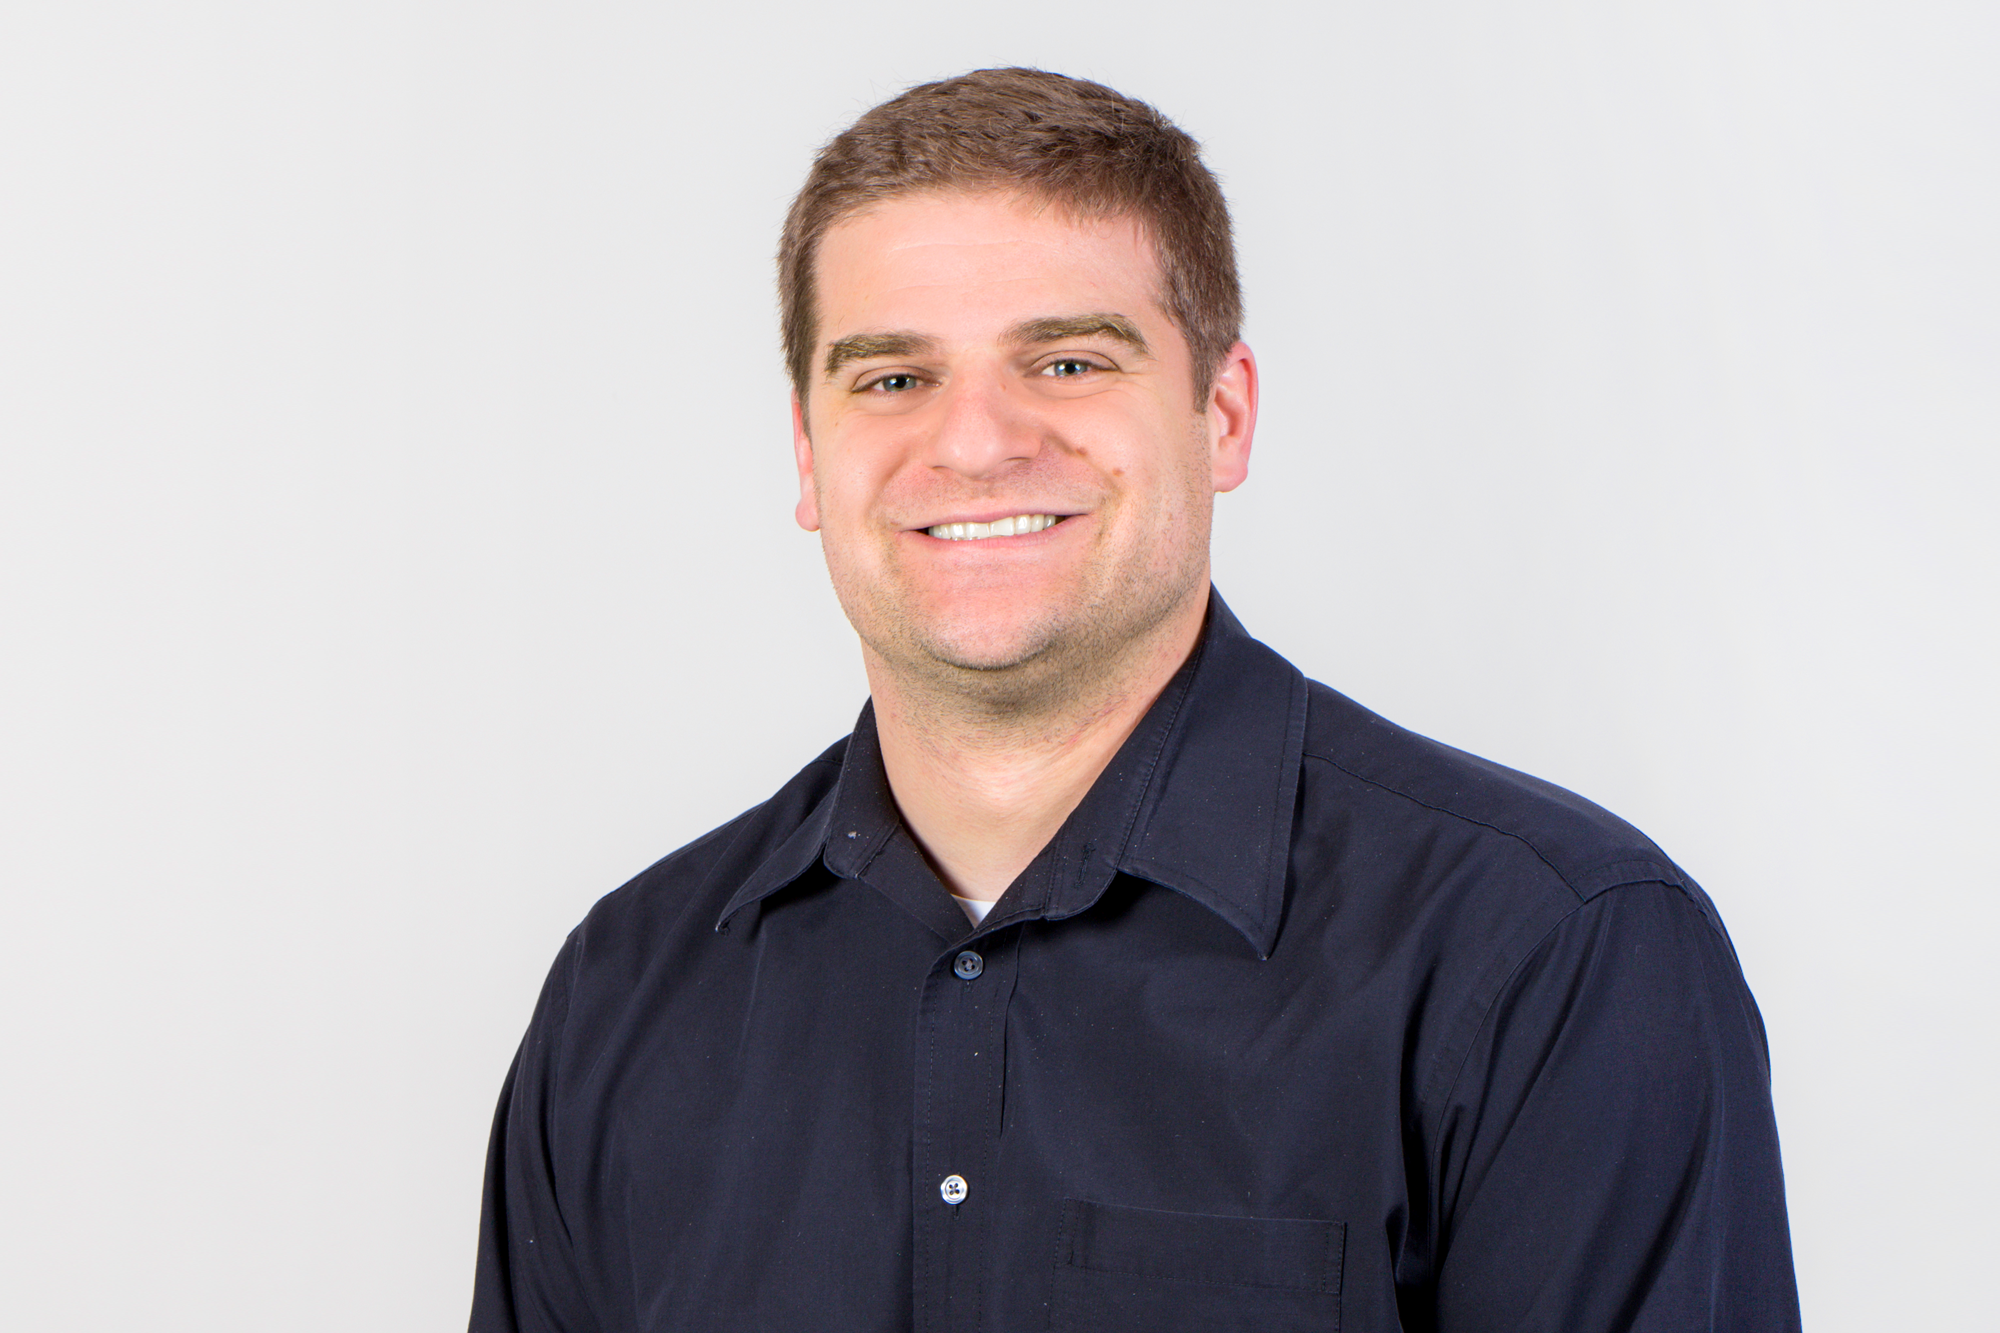 John Kuvetakis, DDS - John Kuvetakis, DDS received his doctorate from the UNMC College of Dentistry,he is a member of the ADA and NDA.Dr. Kuvetakis provides diagnostic, preventative and restorative dental care including surgical extractions and partial and complete dentures.